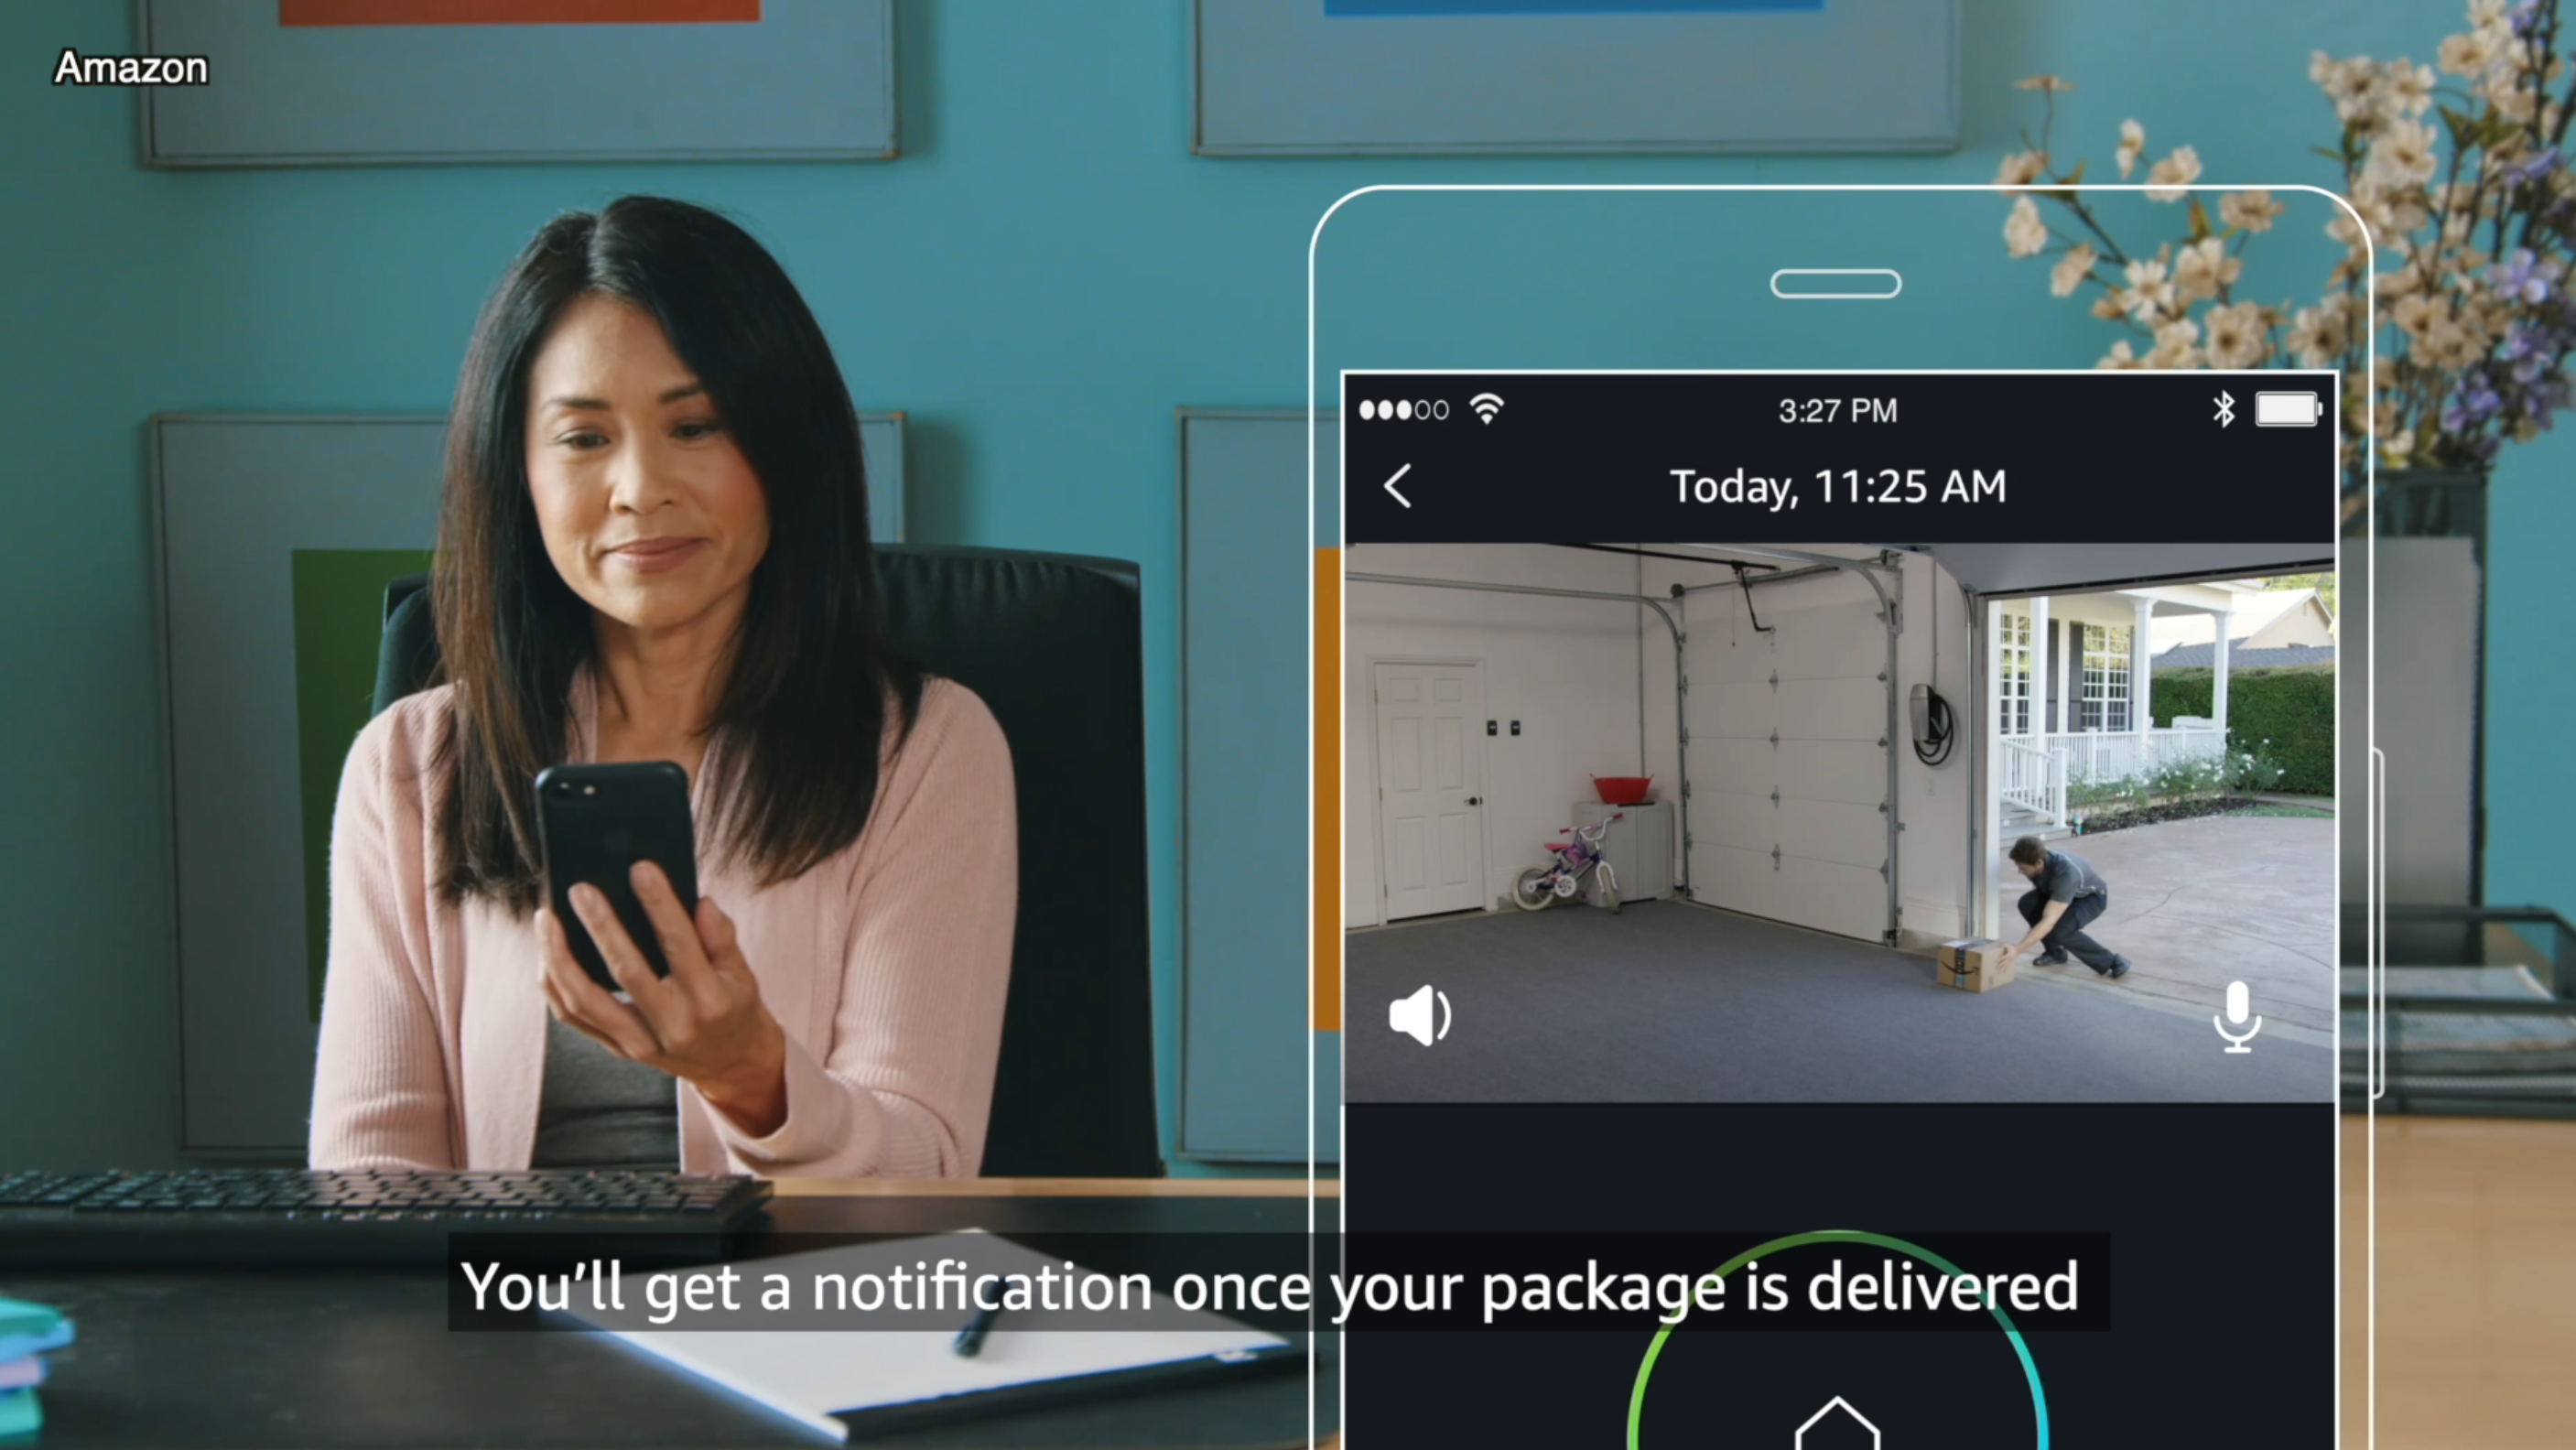 Amazon now offering in-garage delivery option in addition to